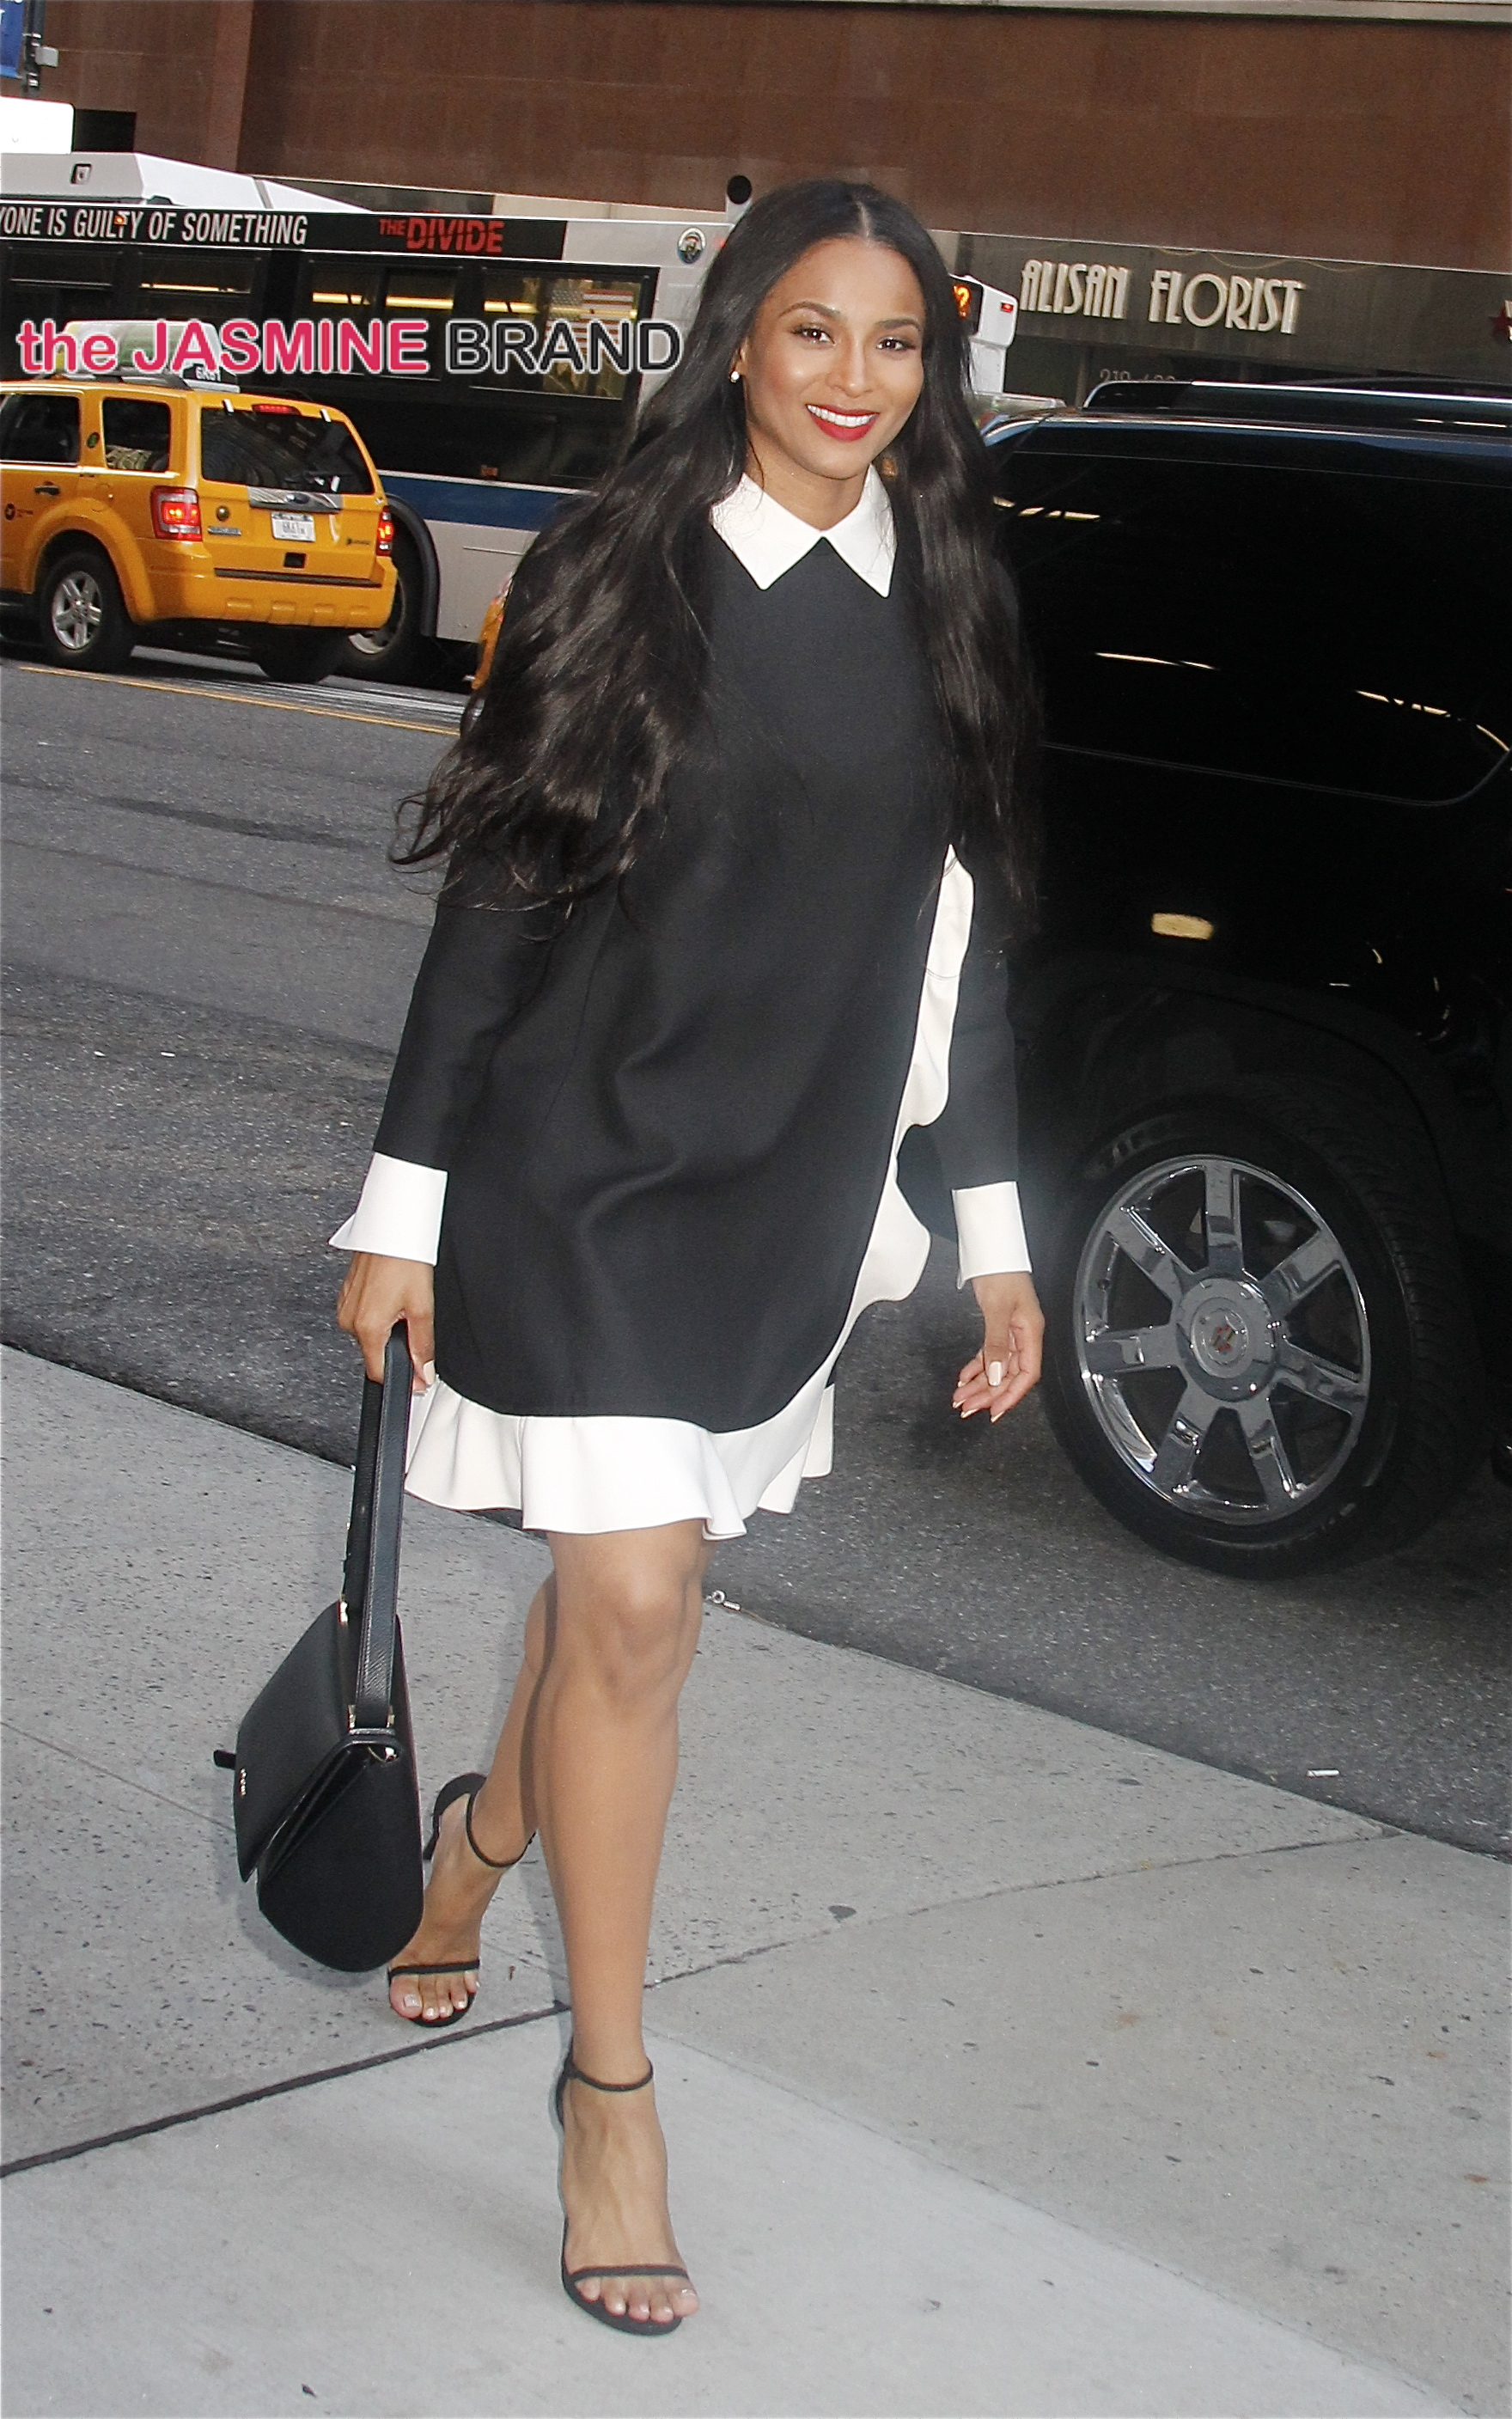 Looking beautiful in black and white dress, new mom Ciara, spotted in NYC's midtown Manhattan